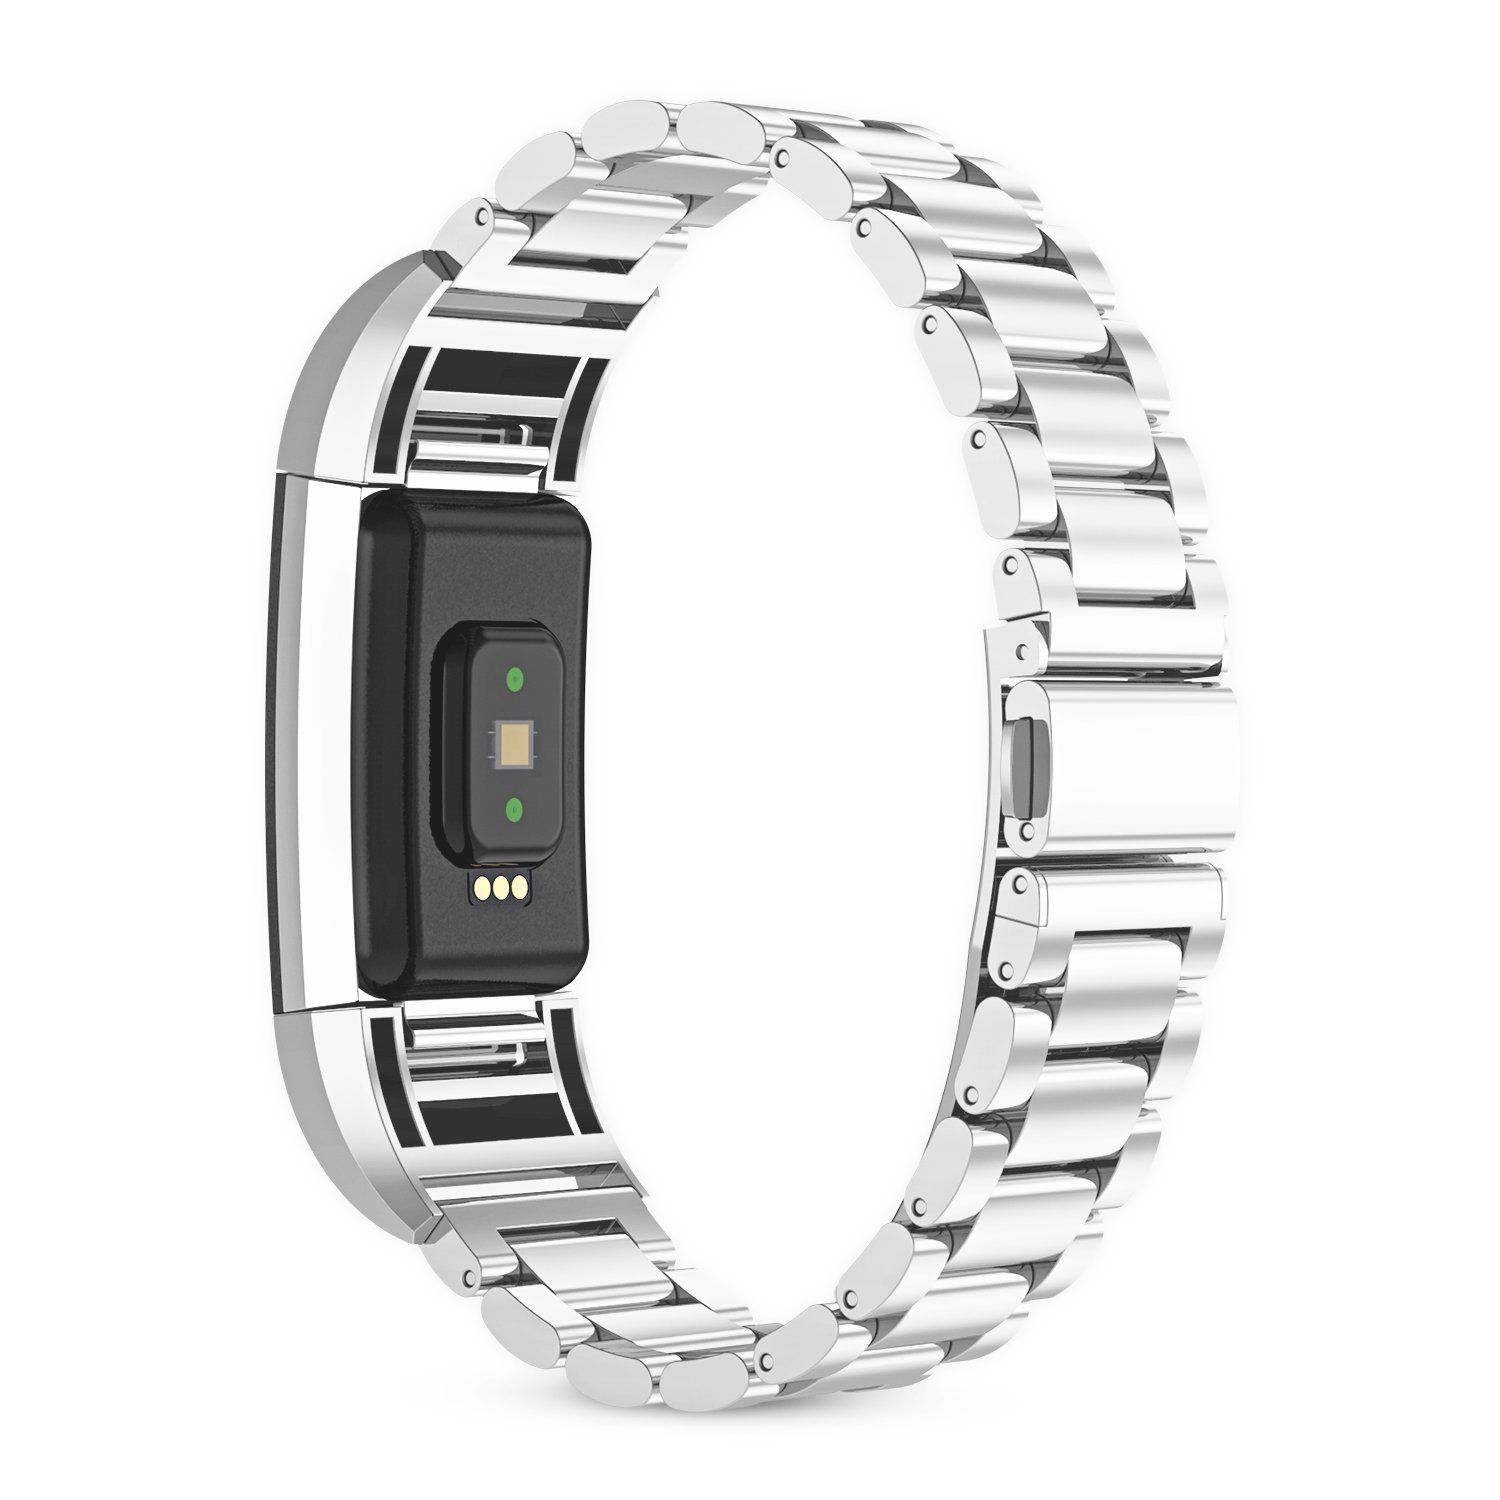 For fitbit charge 2 band, 316L Stainless Steel Replacement Accessory Bracelt Band.Small,Large Metal Bands for Fitbit Charge 2 band/Charge 2 Bands/Fitbit Charge 2 by WOCOOL (Image #2)